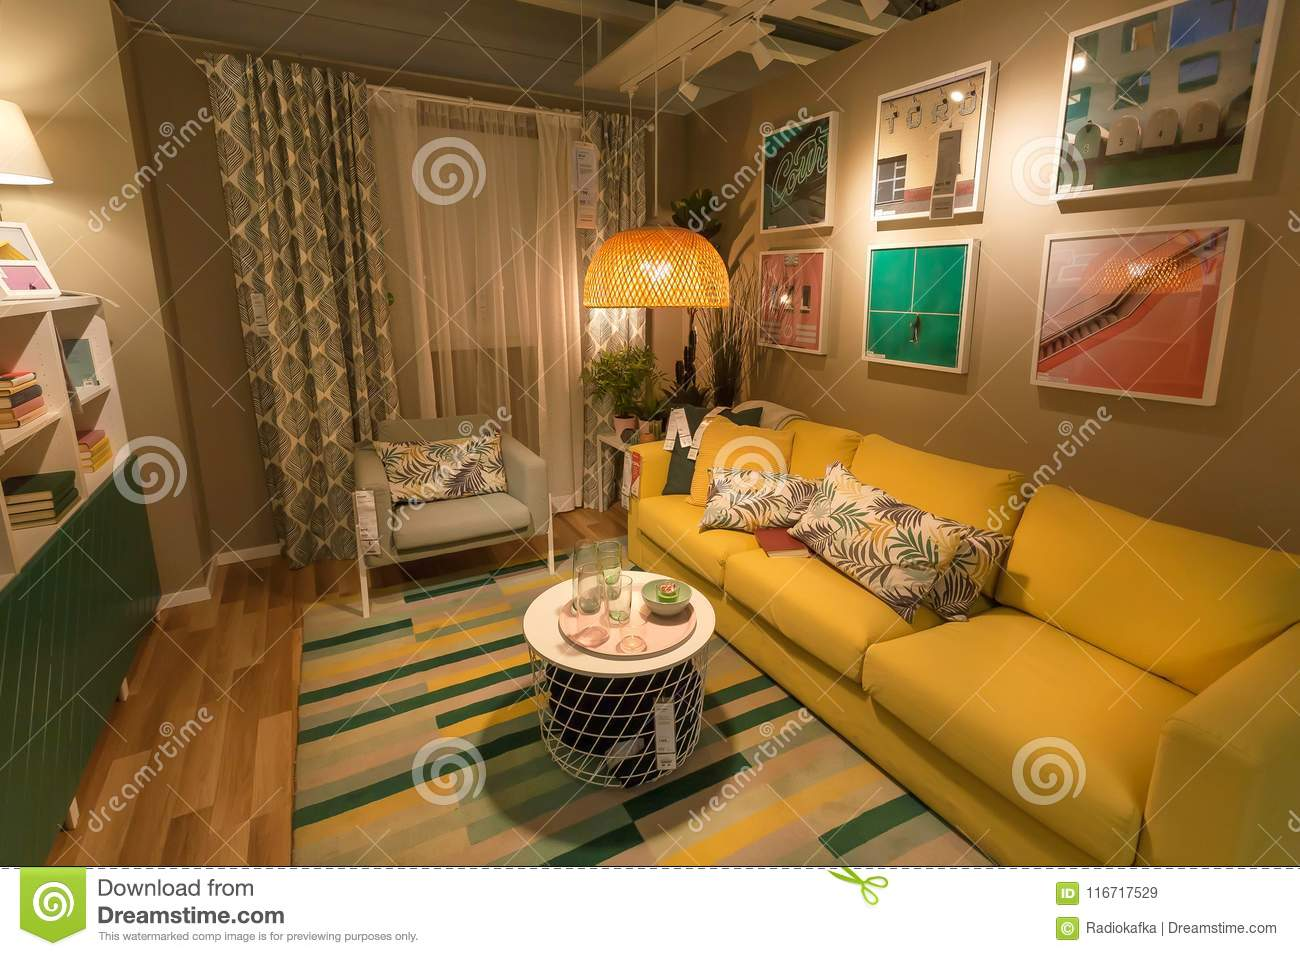 Cute modern living room in large ikea store with sofa furniture decor lamps